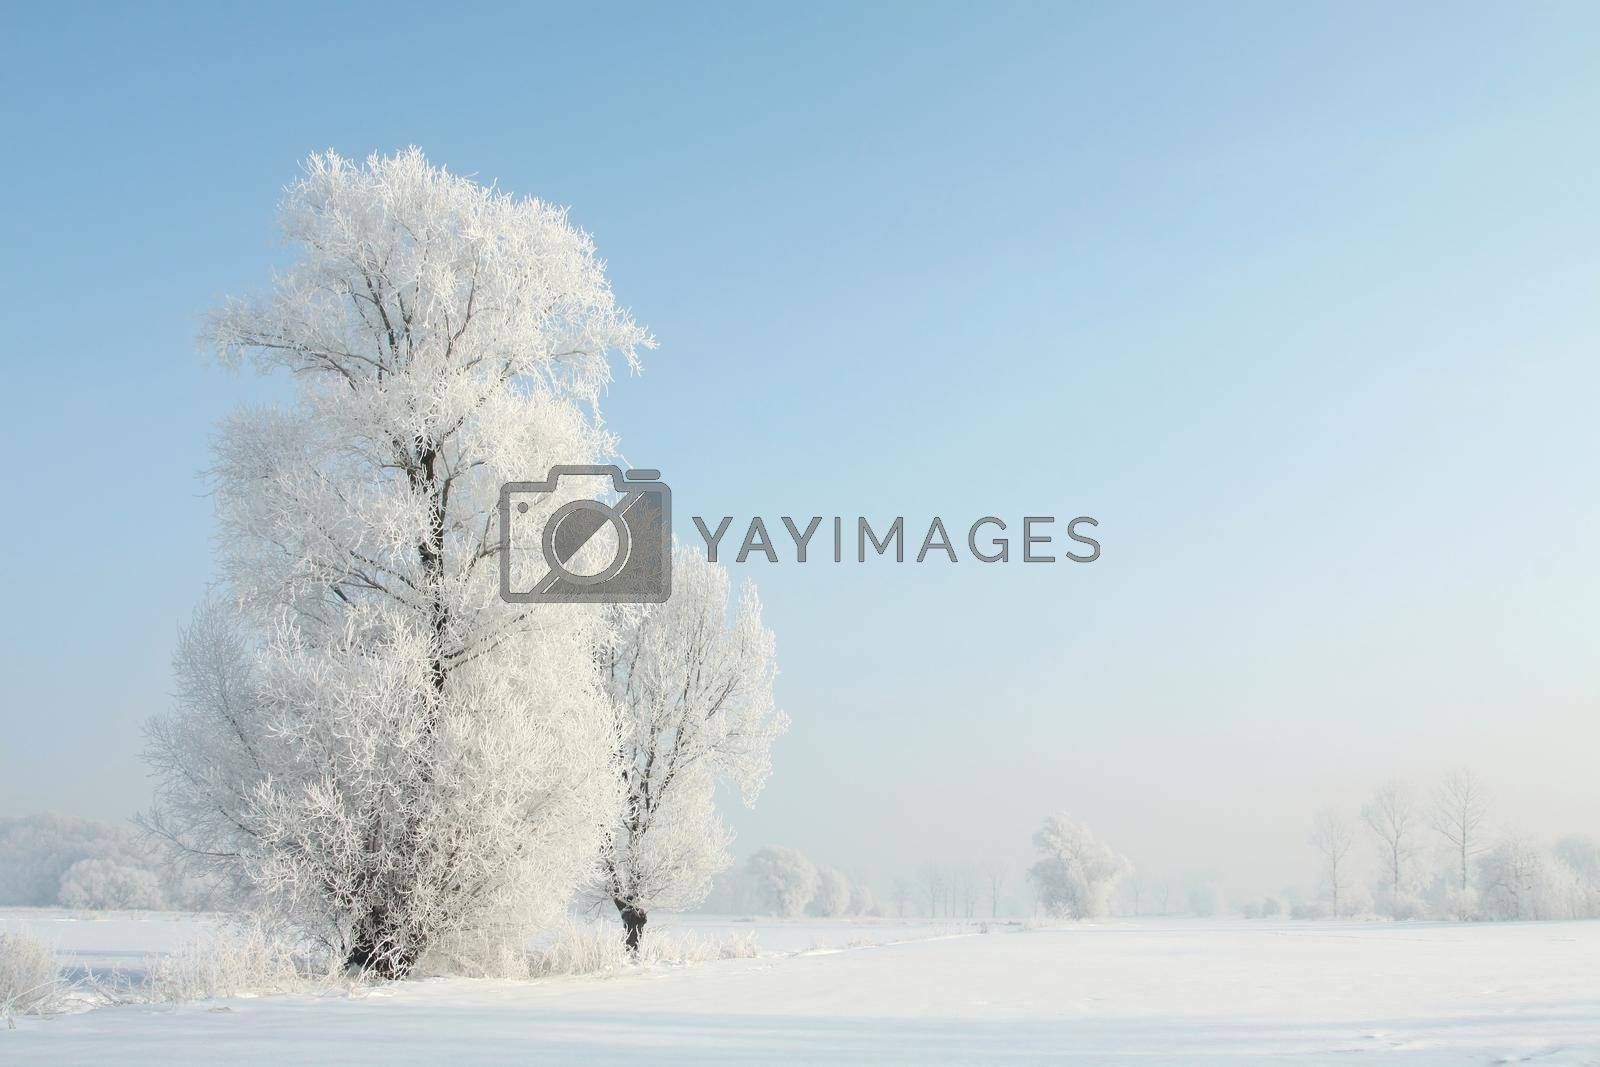 Frosty winter trees against the blue sky at sunrise.